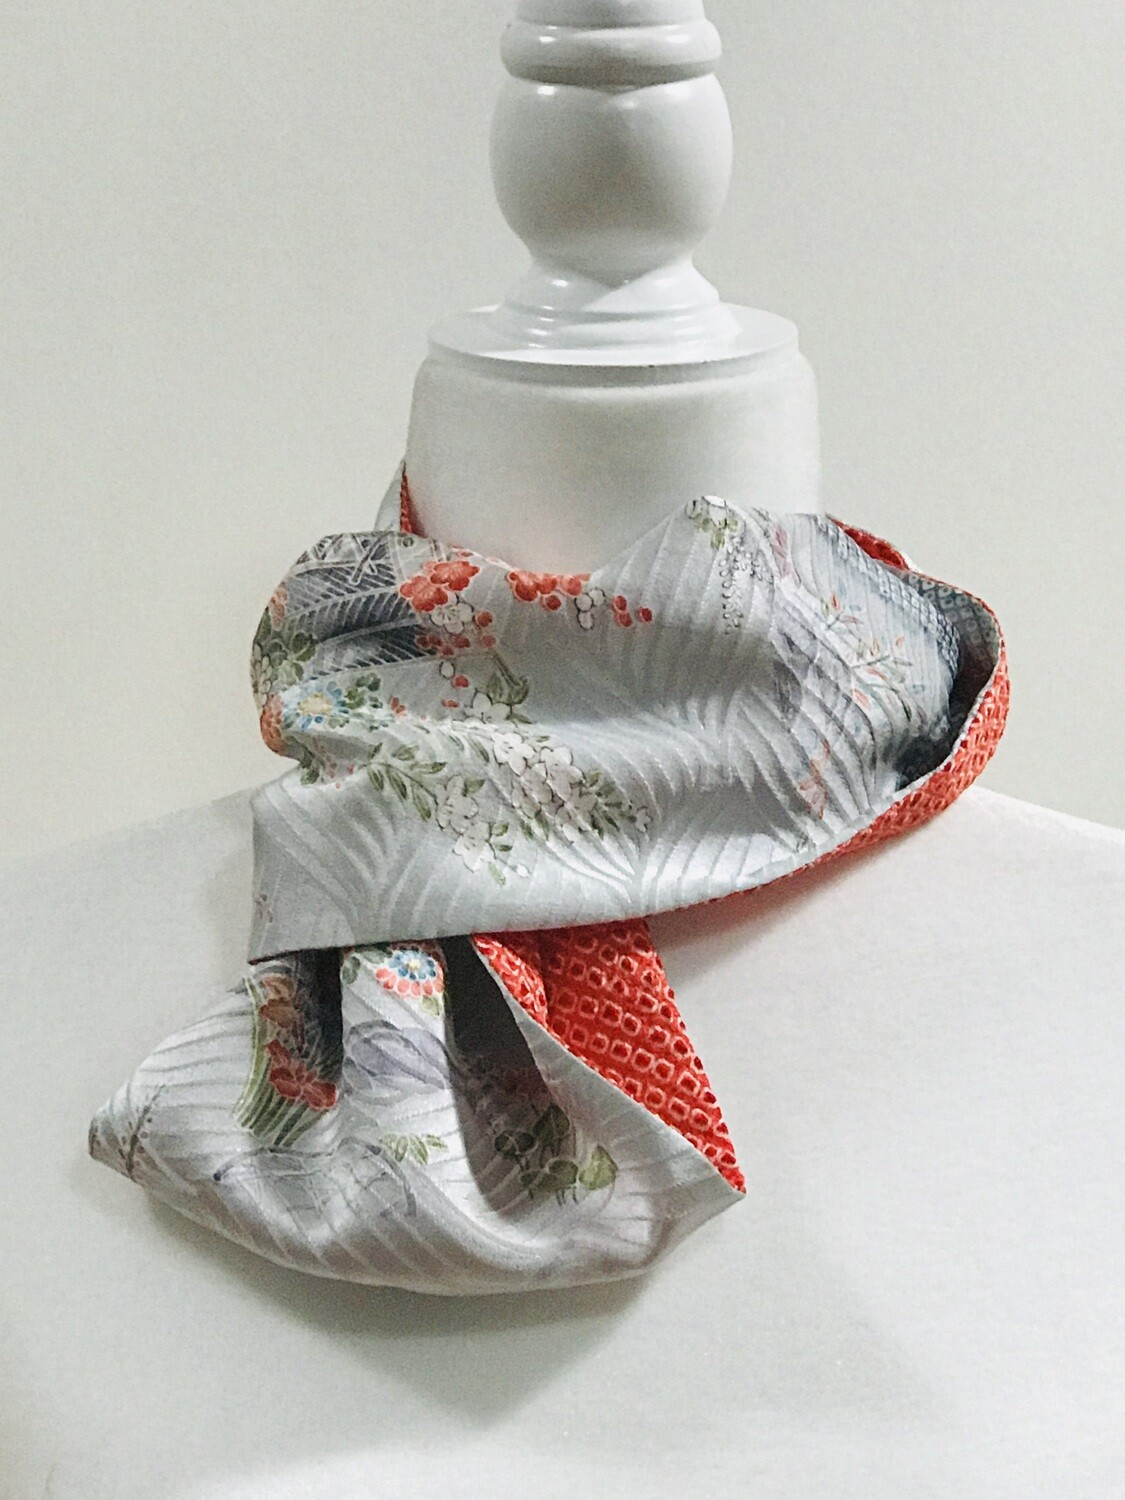 Double infinity scarf 6.25 x 50 in